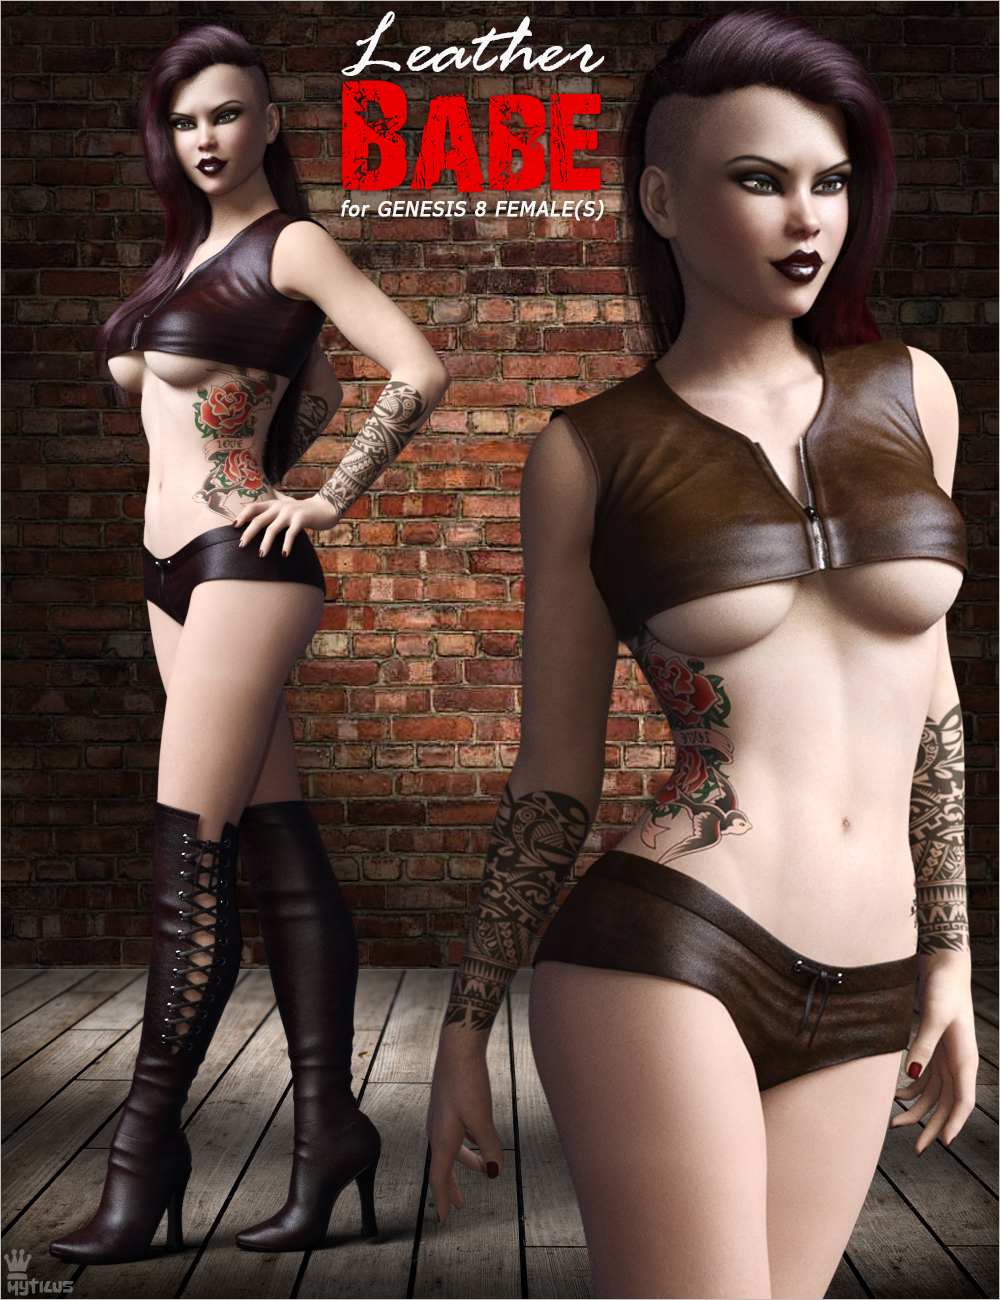 Leather Babe Outfit Set for Genesis 8 Females by mytilus